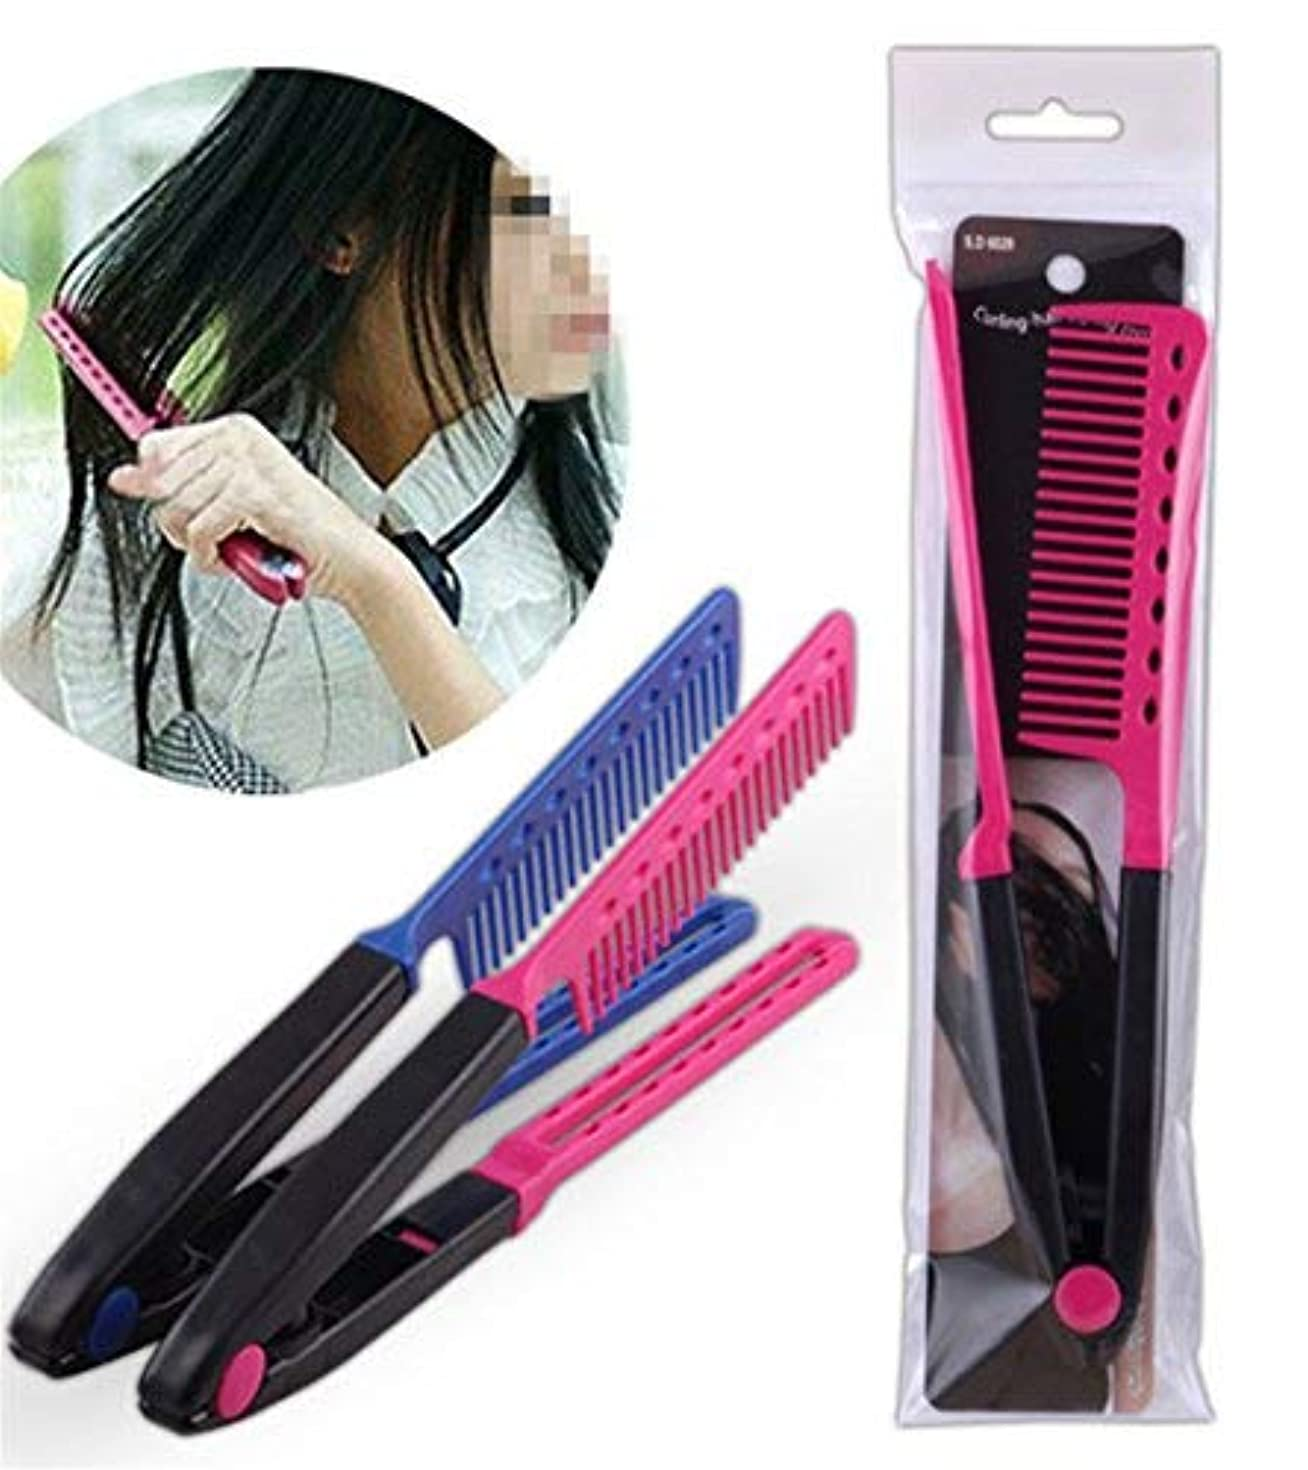 拡張仮定リスキーな1Pc DIY Salon Hair Brush Combs Hairdressing Styling Hair Straightener V Shaped Straight Comb Color Random [並行輸入品]